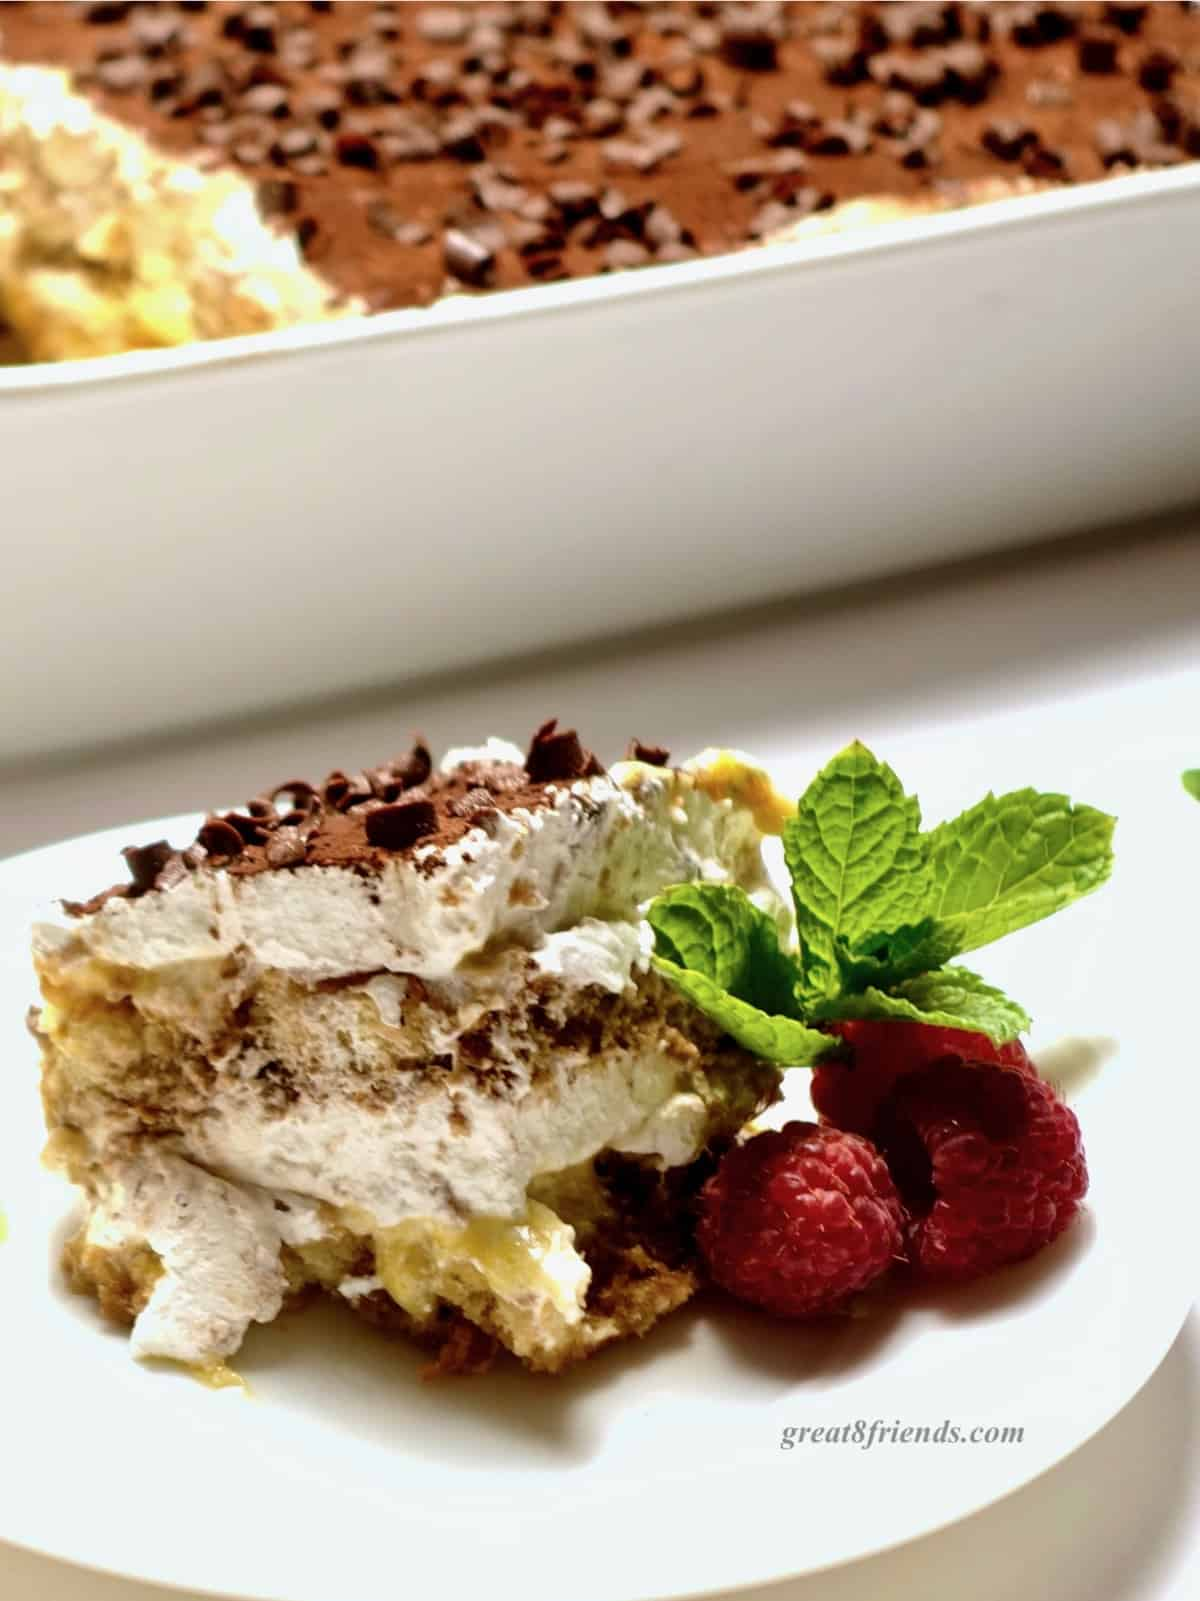 A piece of tiramisu on a plate garnished with raspberries and mint sprigs.